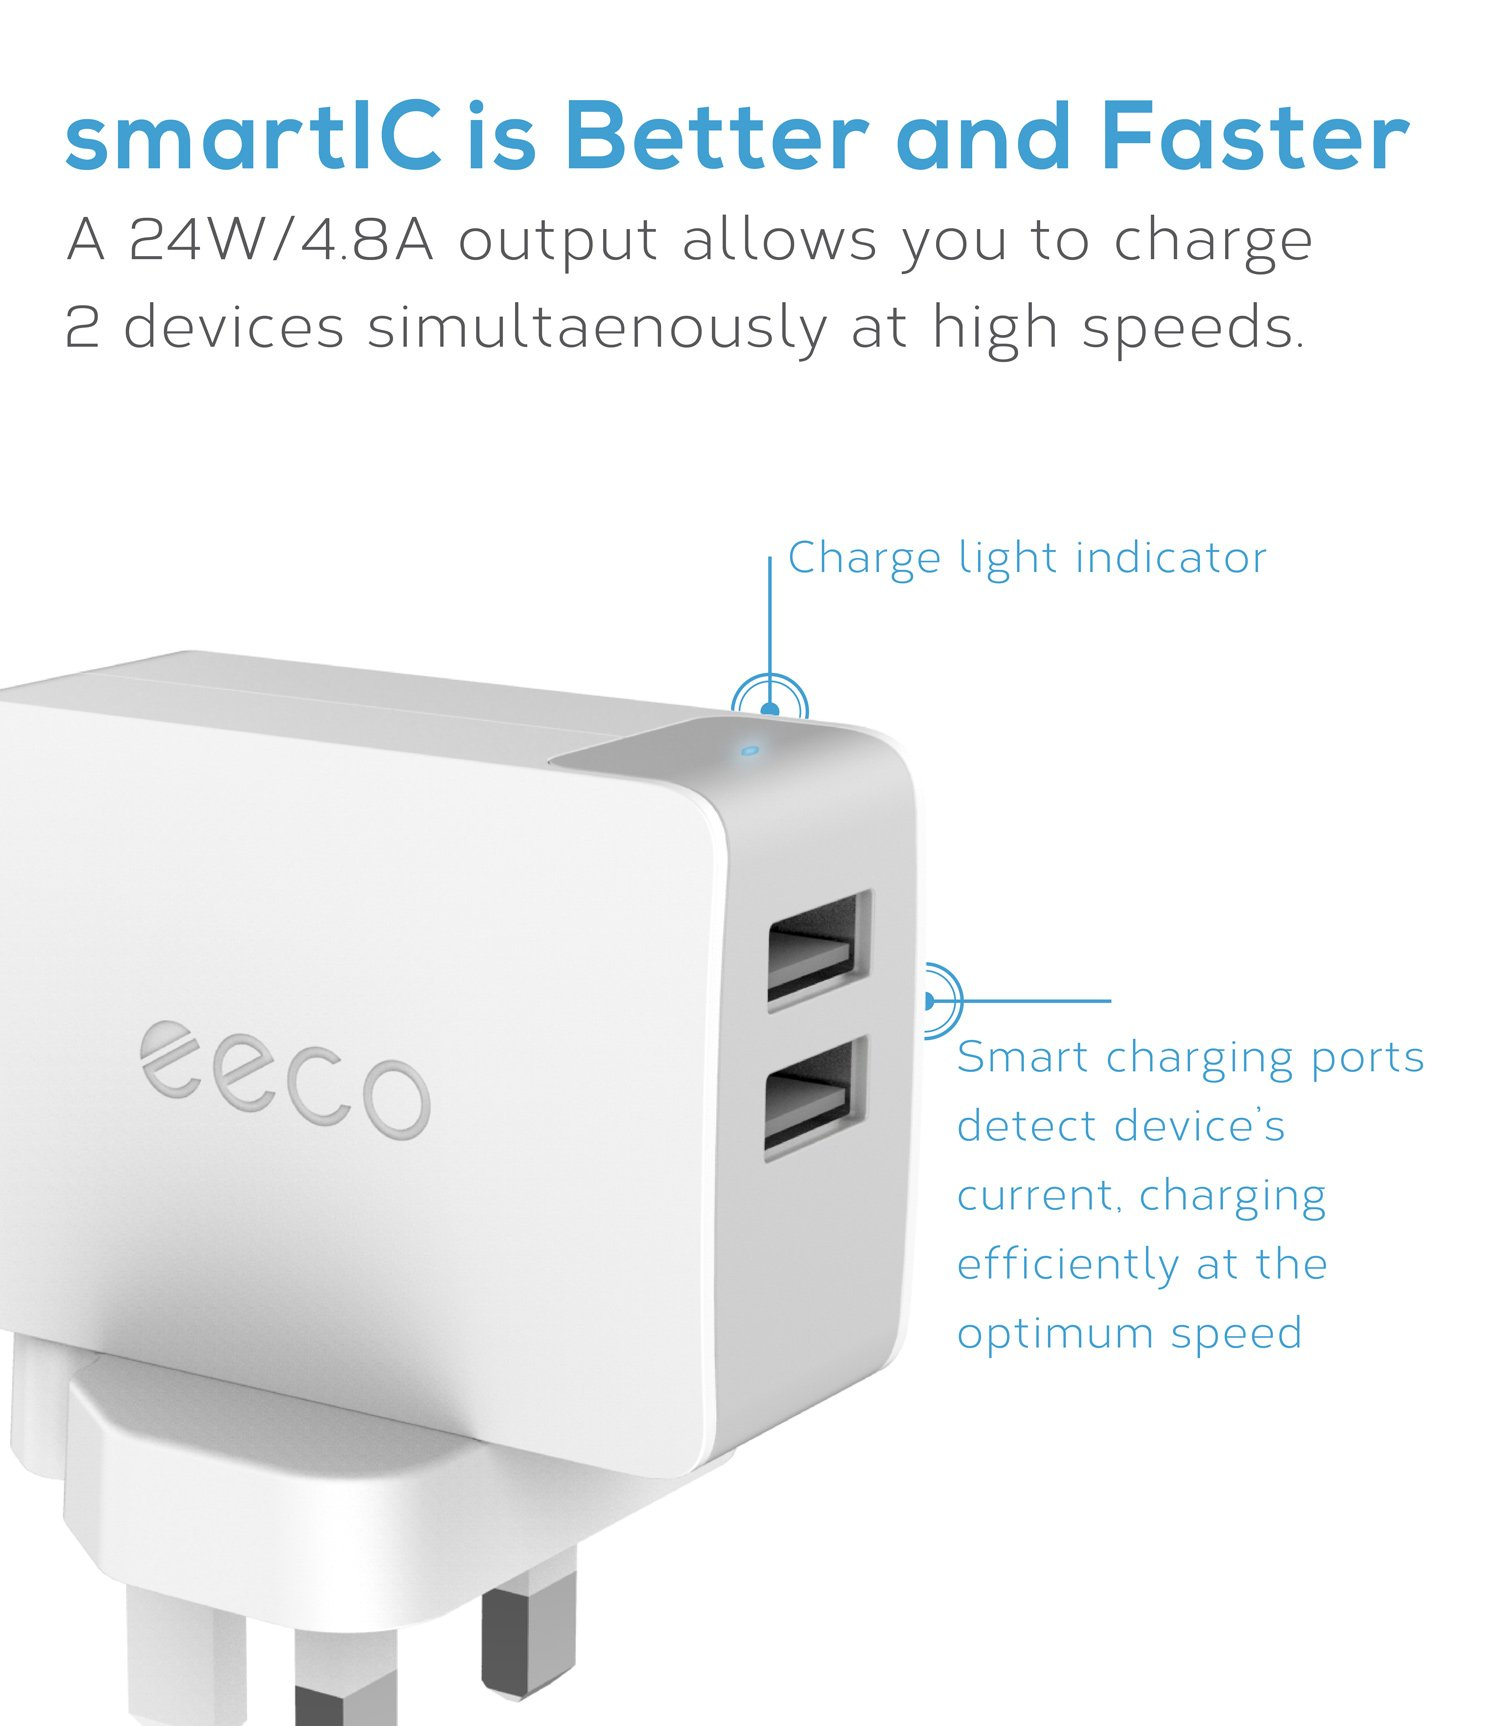 eeco Main Chargers USB 24W 2 Port Charging Fast Travel Adapter for iPhone 7/8/X/6 plus, iPad Air, Samsung Galaxy S8/S7/S6, Google Nexus, HTC, LG G6/G5/G4, Blackberry, Tablet